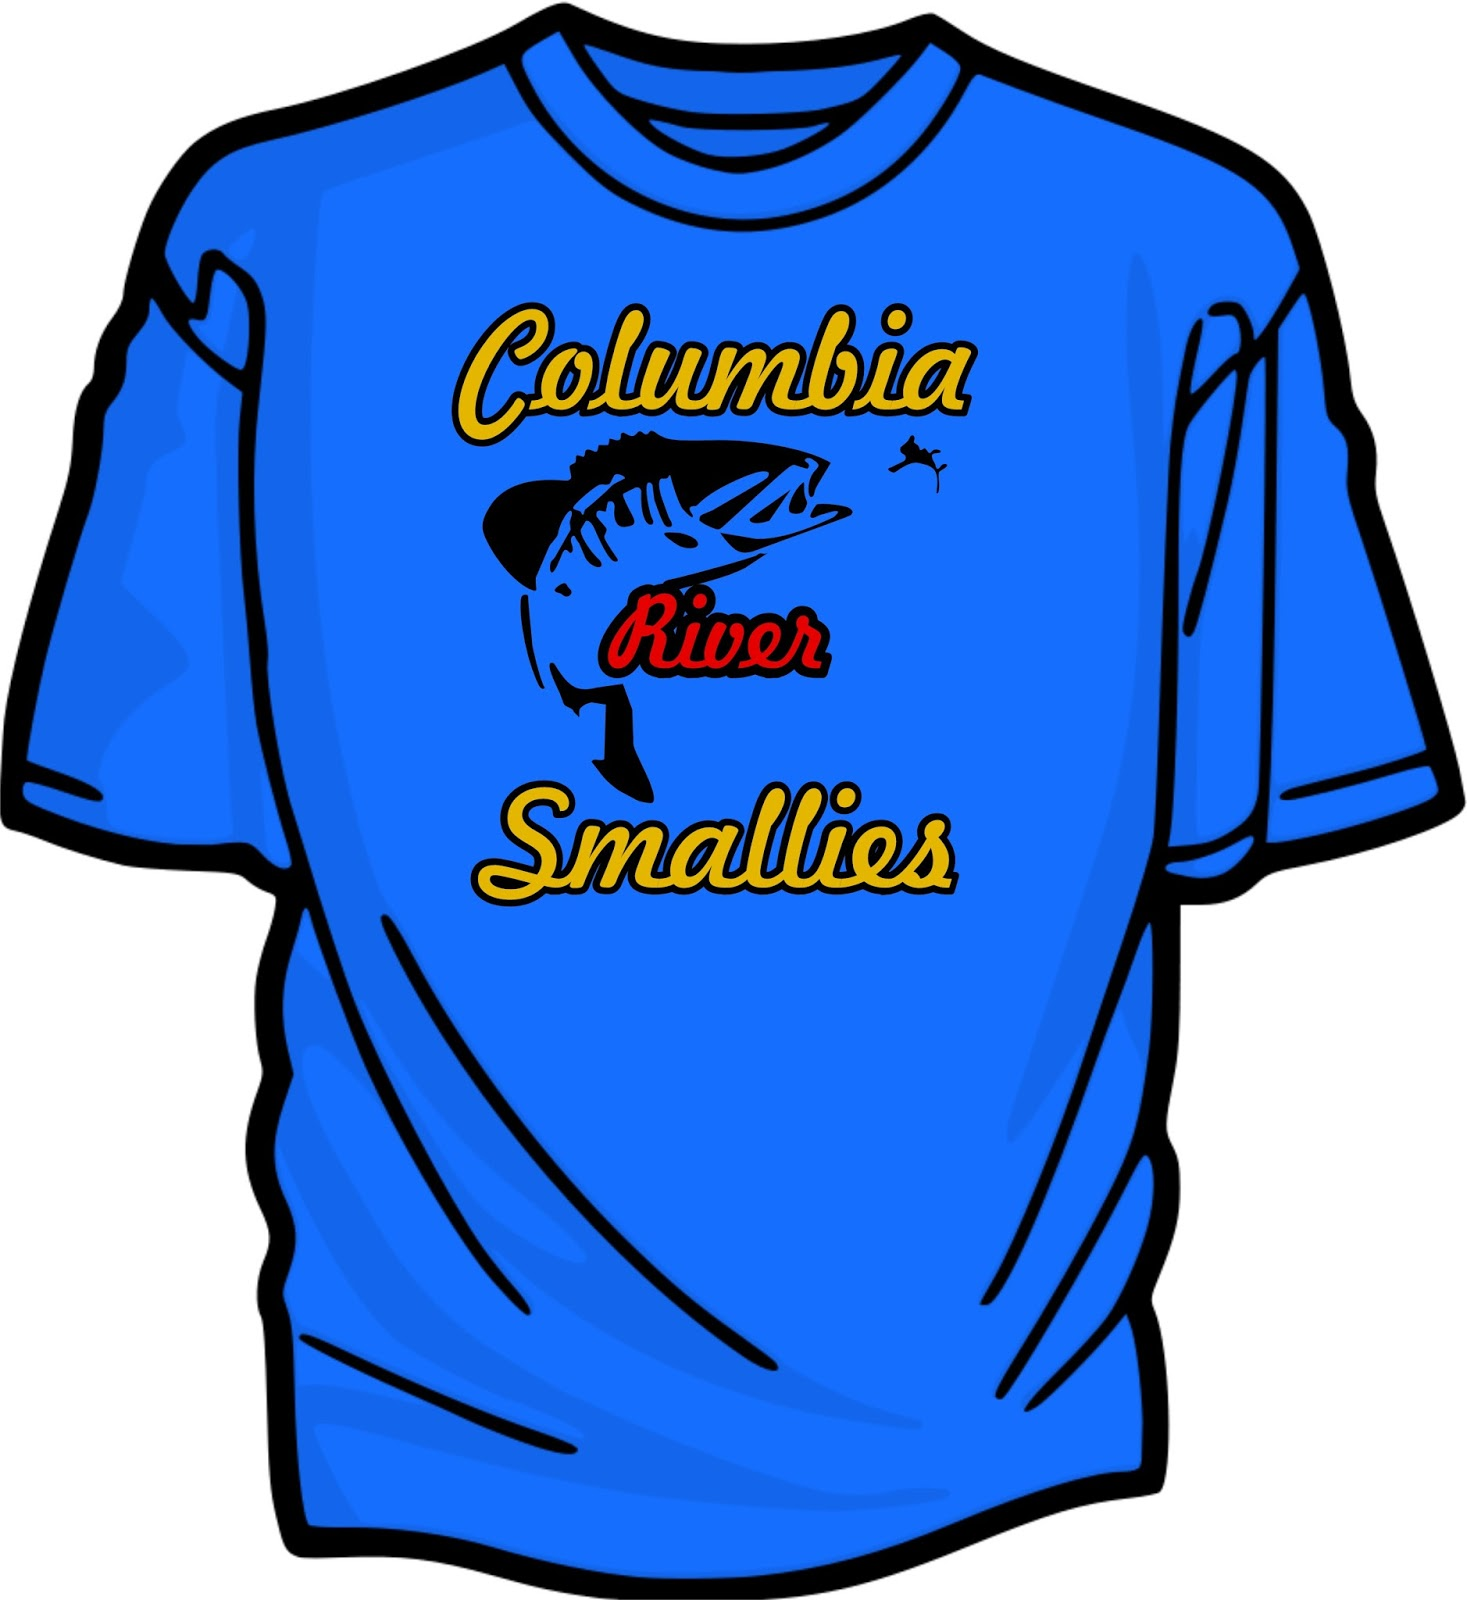 ea094174738 Columbia River Smallies are the Best. Custom shirts shipped to your door  from $20. More shirts lower the cost. Email bridgetowntees@gmail.com for  details.